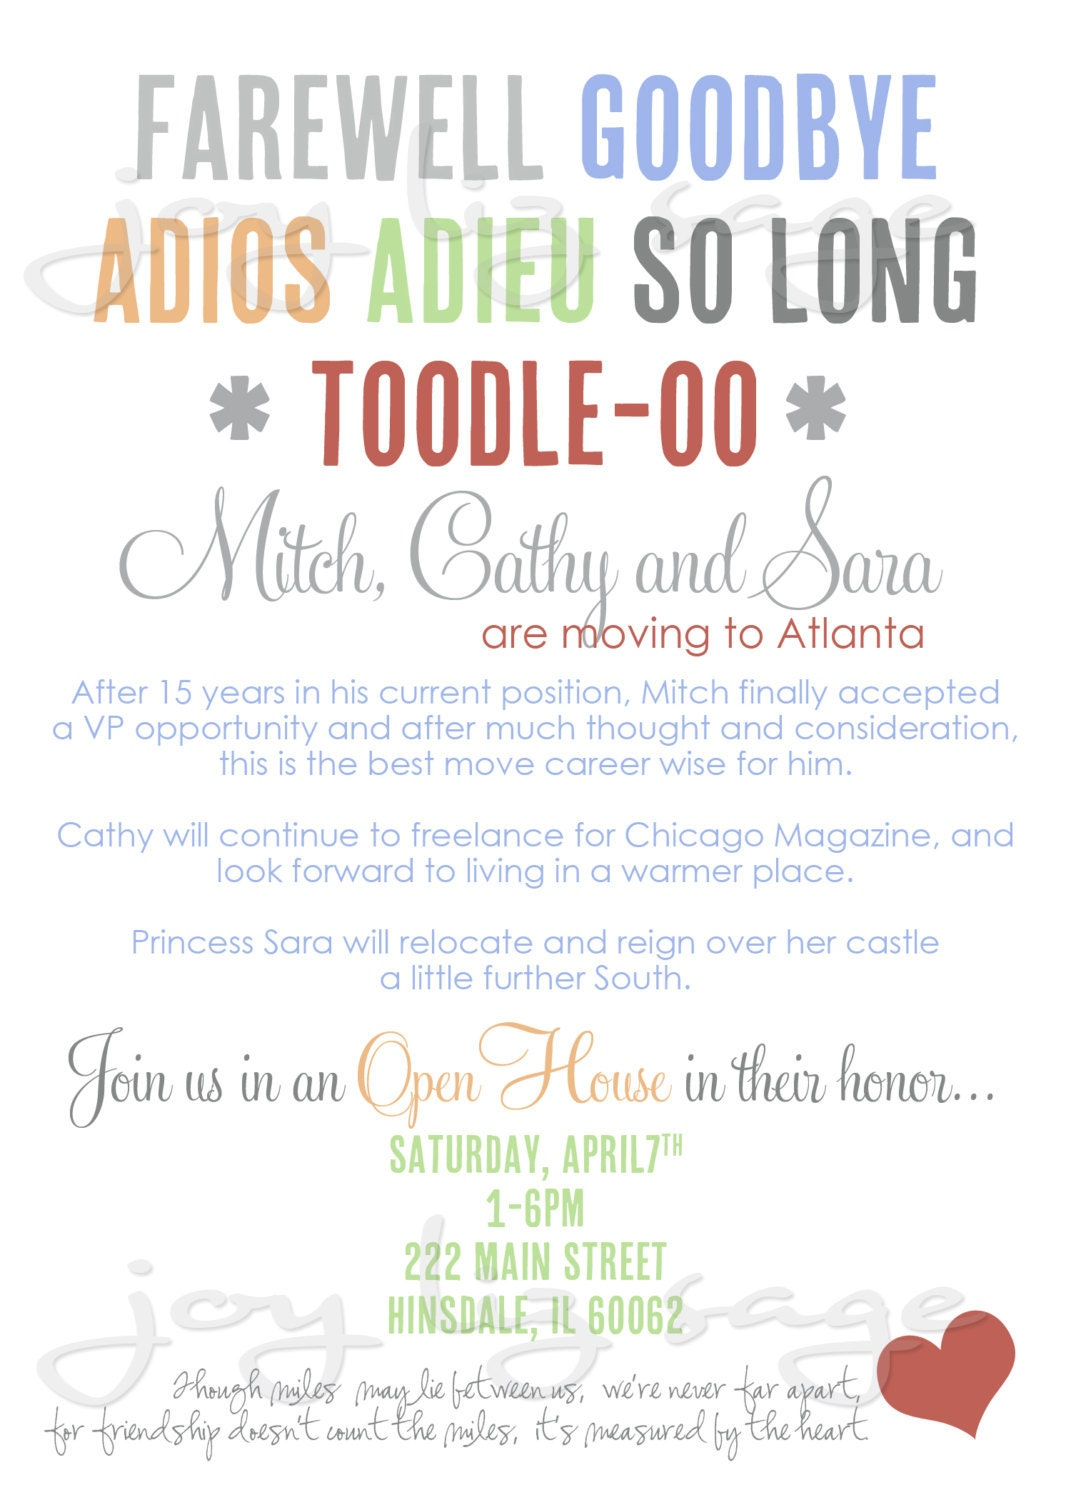 Goodbye Party Invitation Wording Funny as luxury invitations example